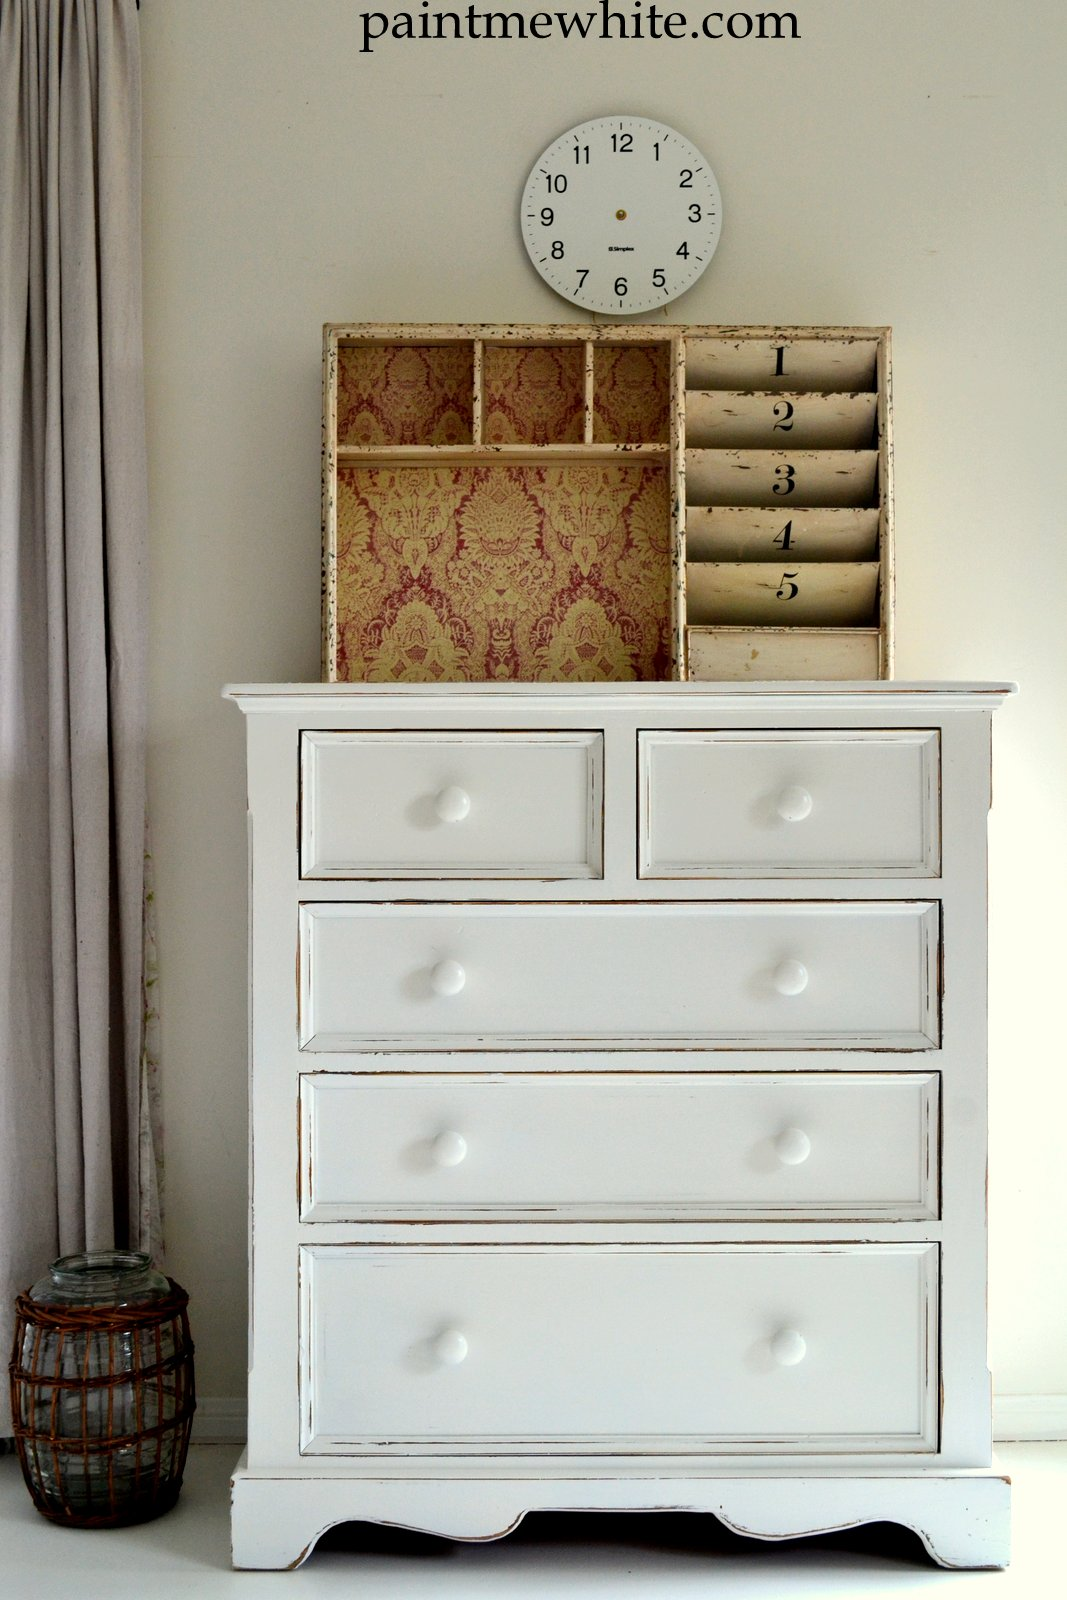 #664629 Chest Of Drawers And A Hall Stand with 1067x1600 px of Most Effective Hallway Chest Of Drawers 16001067 wallpaper @ avoidforclosure.info